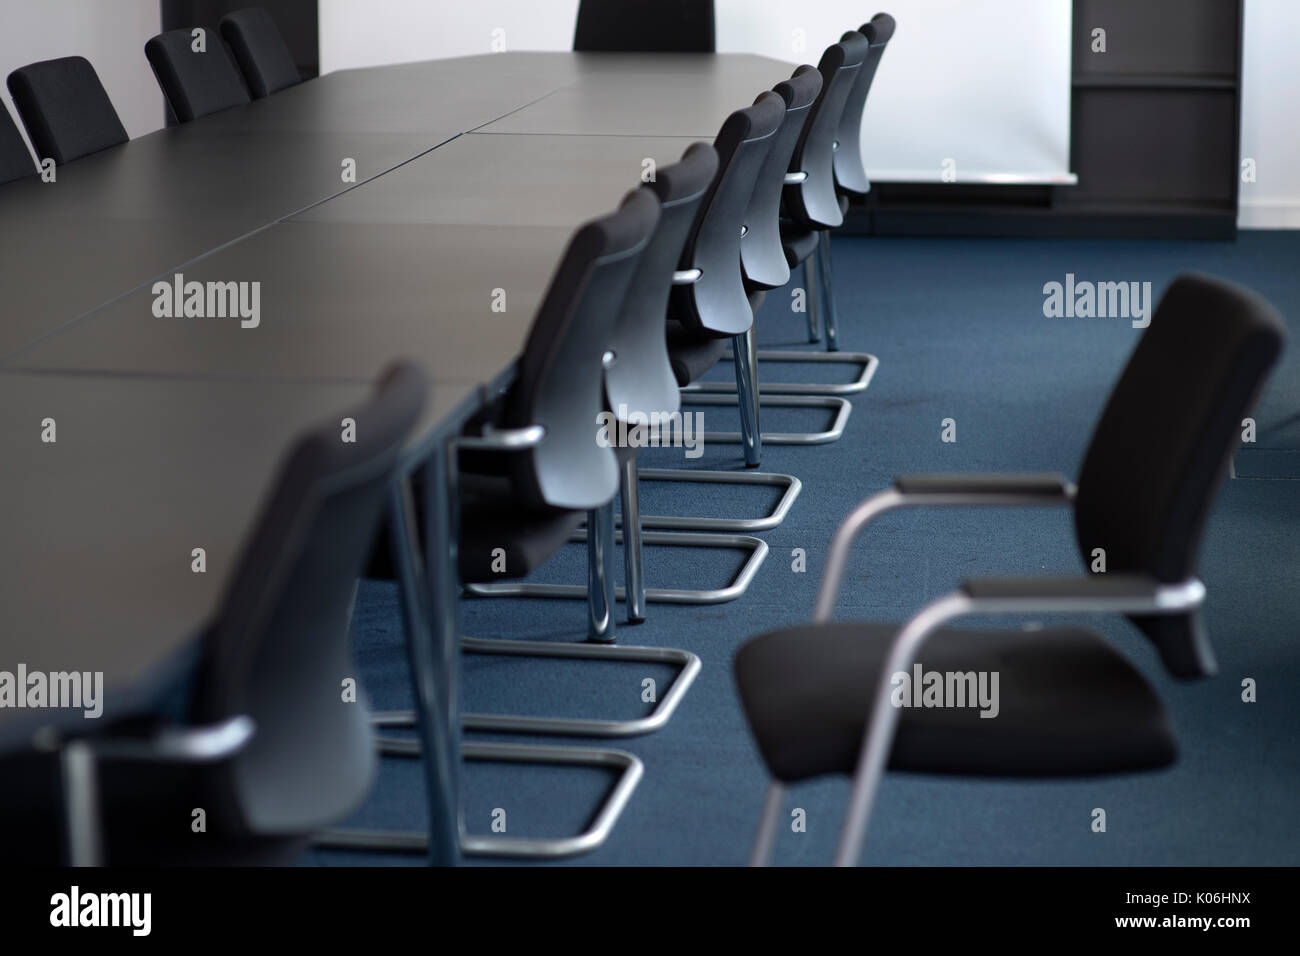 conference table in an empty meeting room - Stock Image